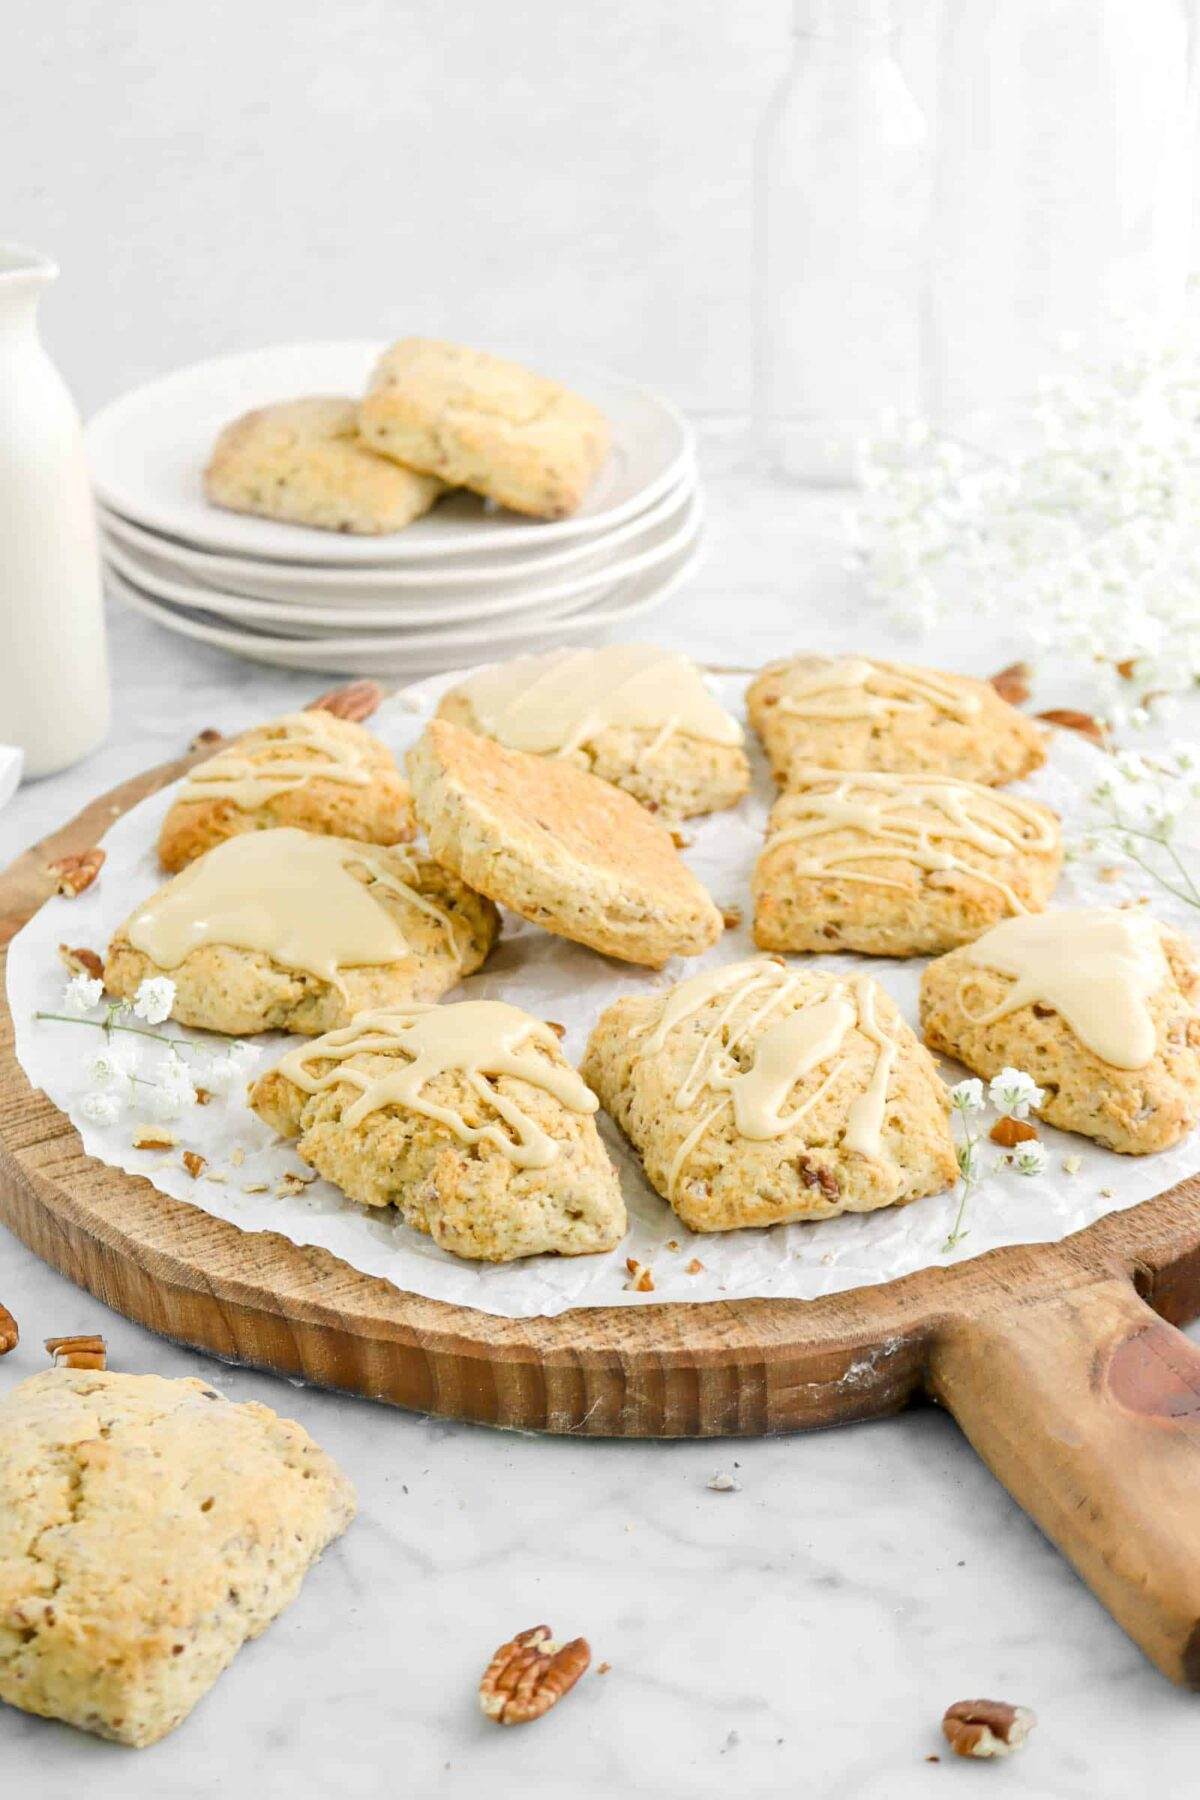 side shot of maple pecan scones on wood serving board with flowers and stacked plates